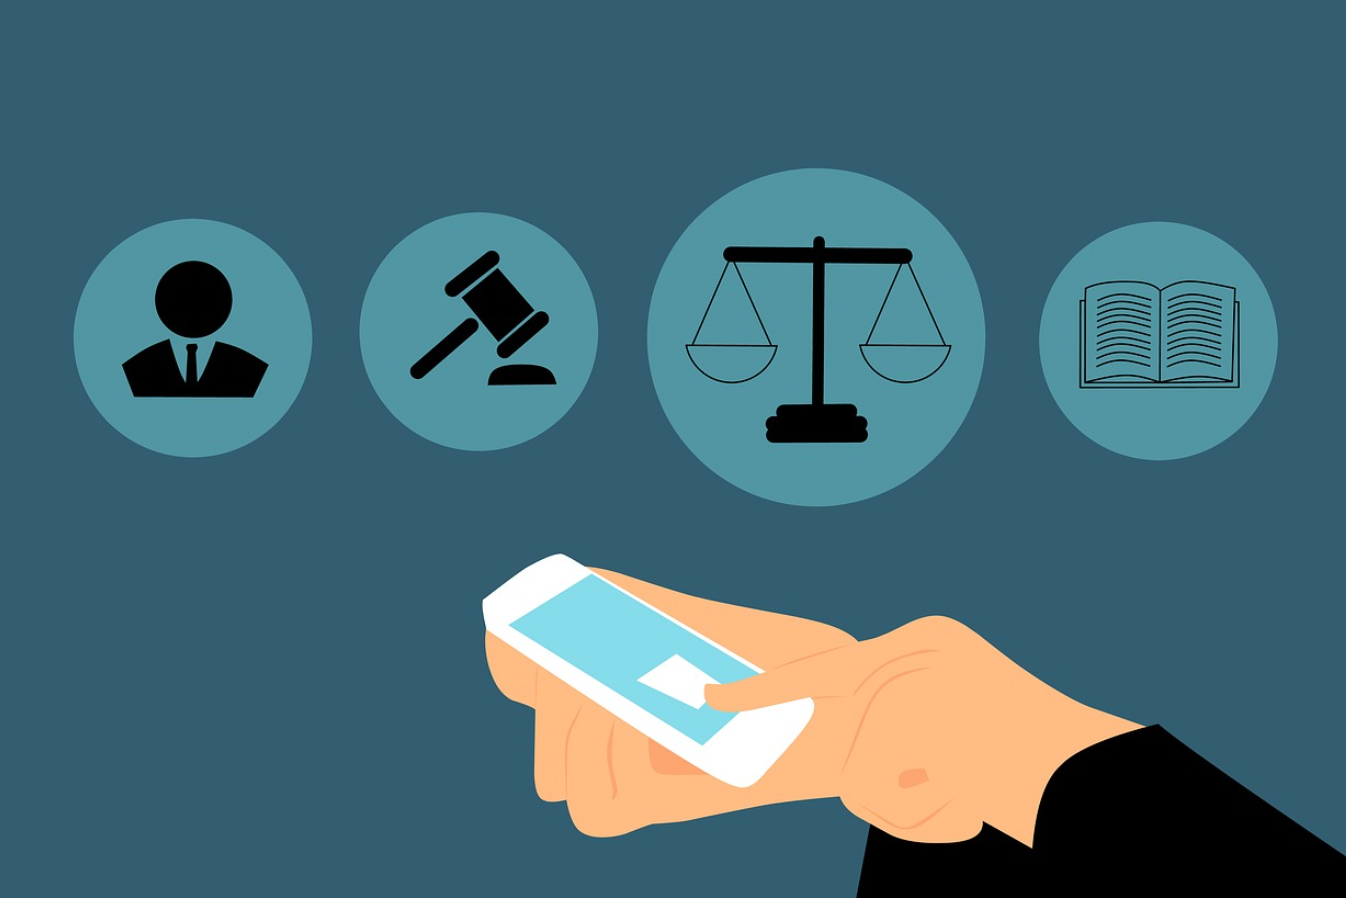 Graphic depicting lawyer holding smartphone, various legal symbols in the air before the the lawyer. Graphic by Mohamed Hassan, via Pixabay.com.